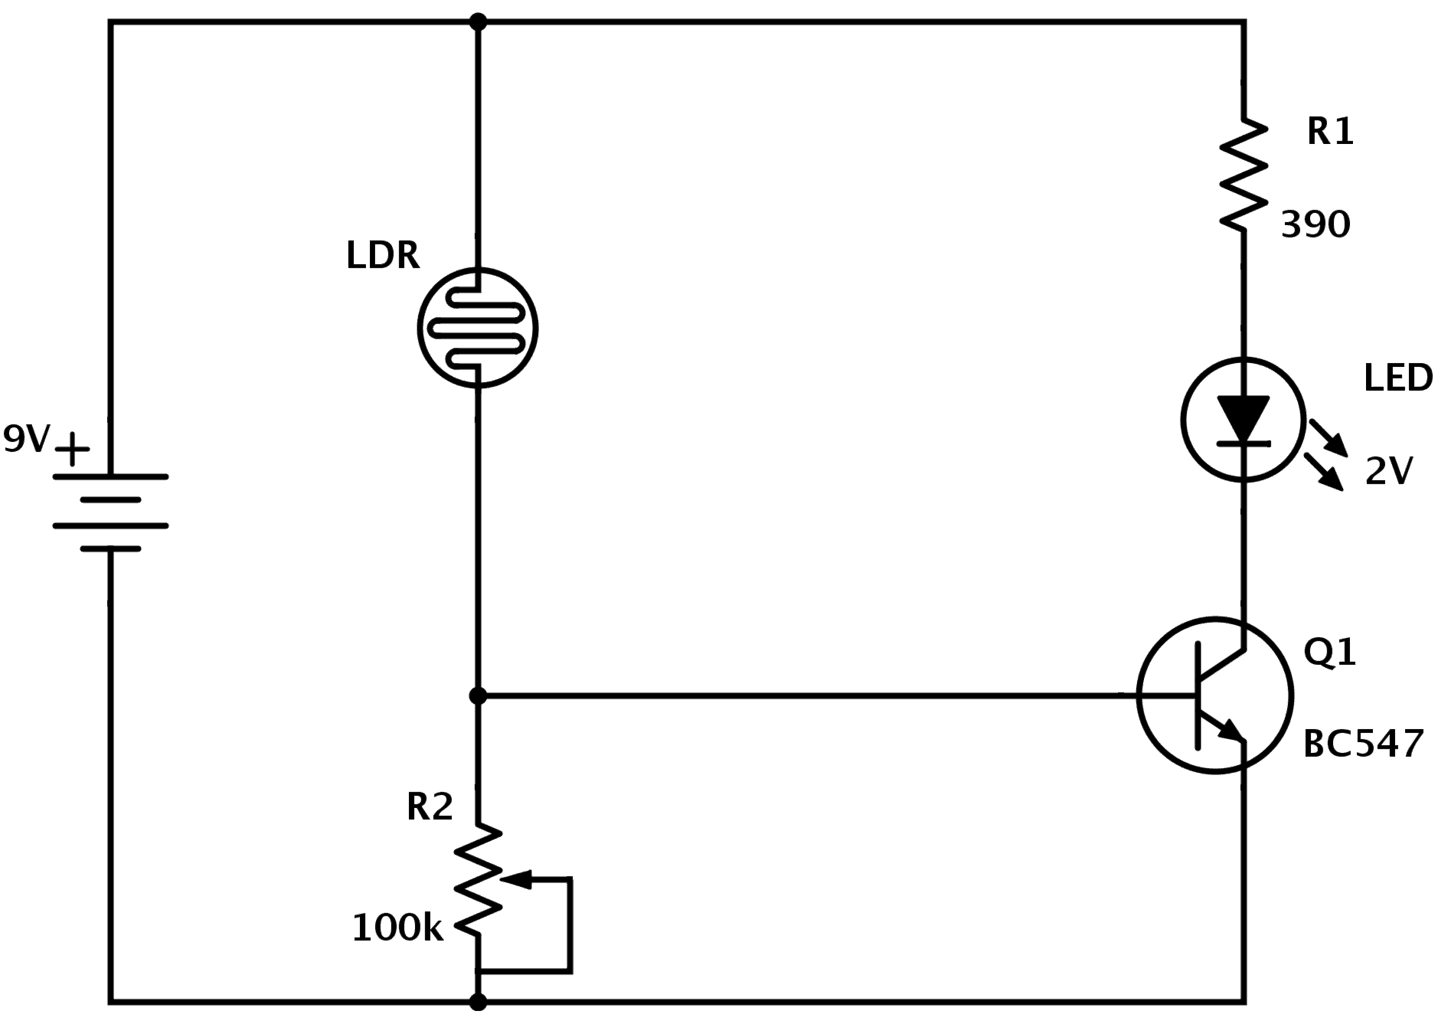 circuit diagram how to read and understand any schematic rh build electronic circuits com schematic diagram template schematic diagrams free